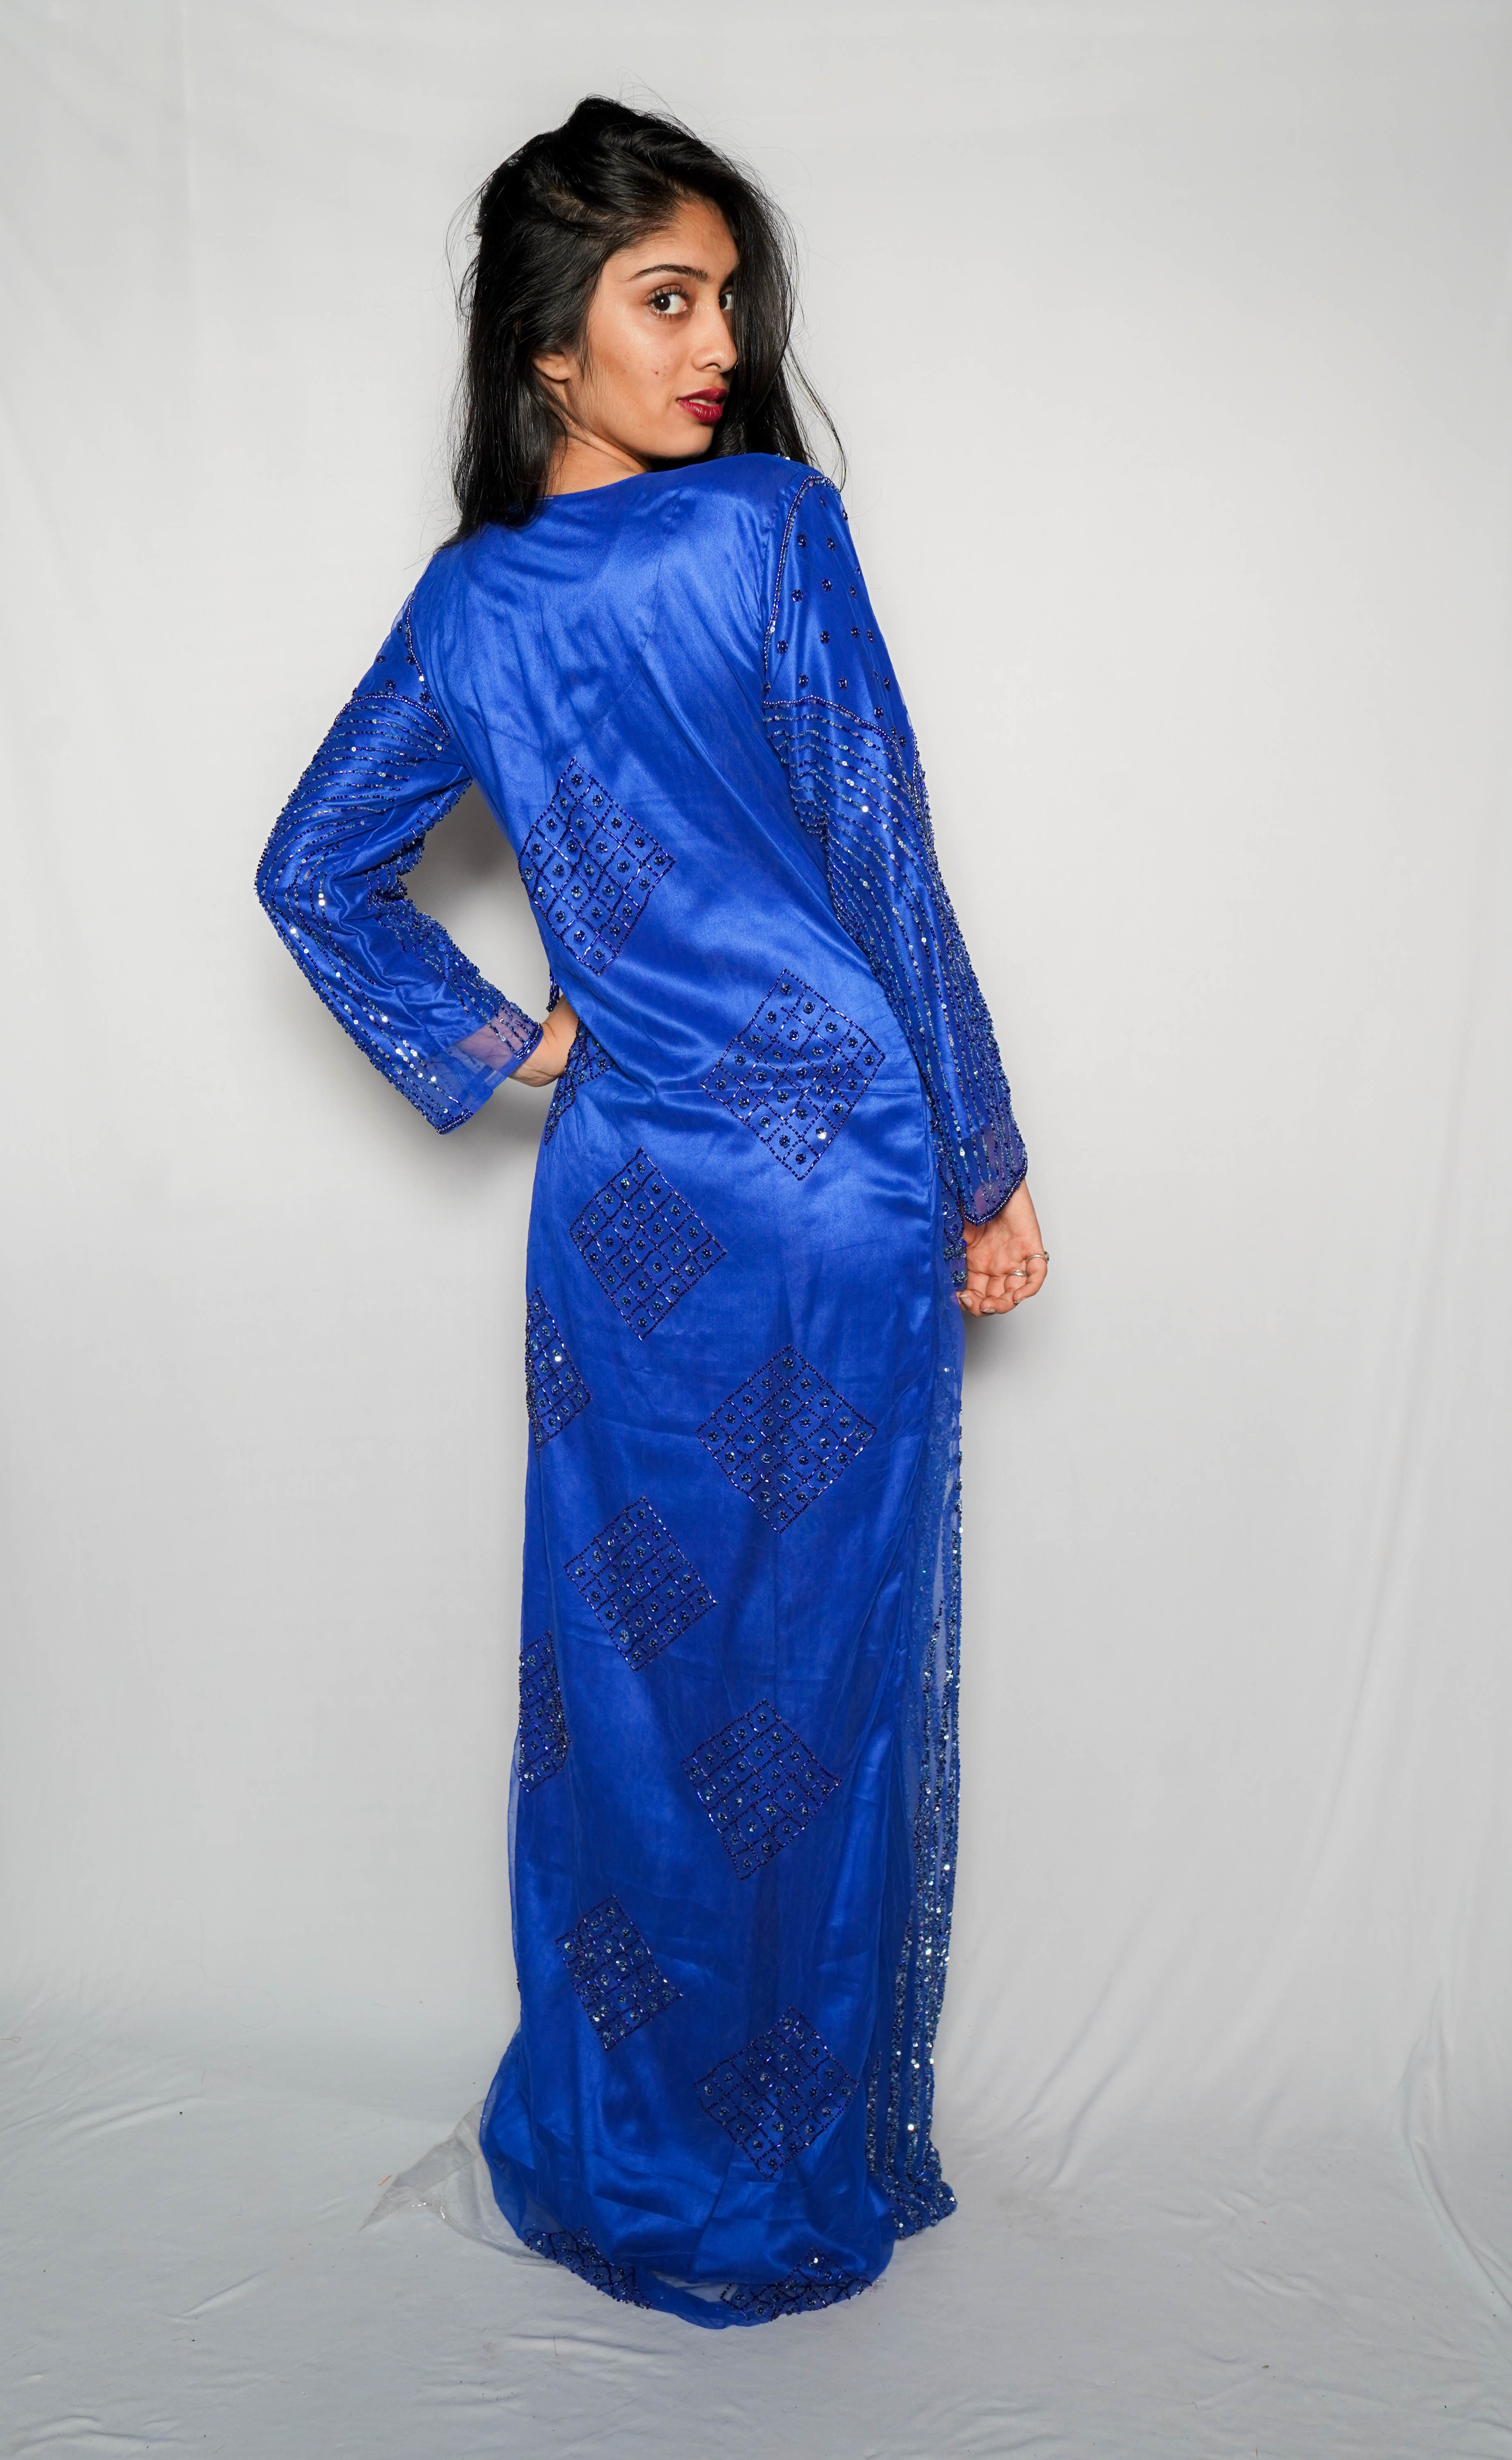 Ladies Egyptian Blue Gown Dress